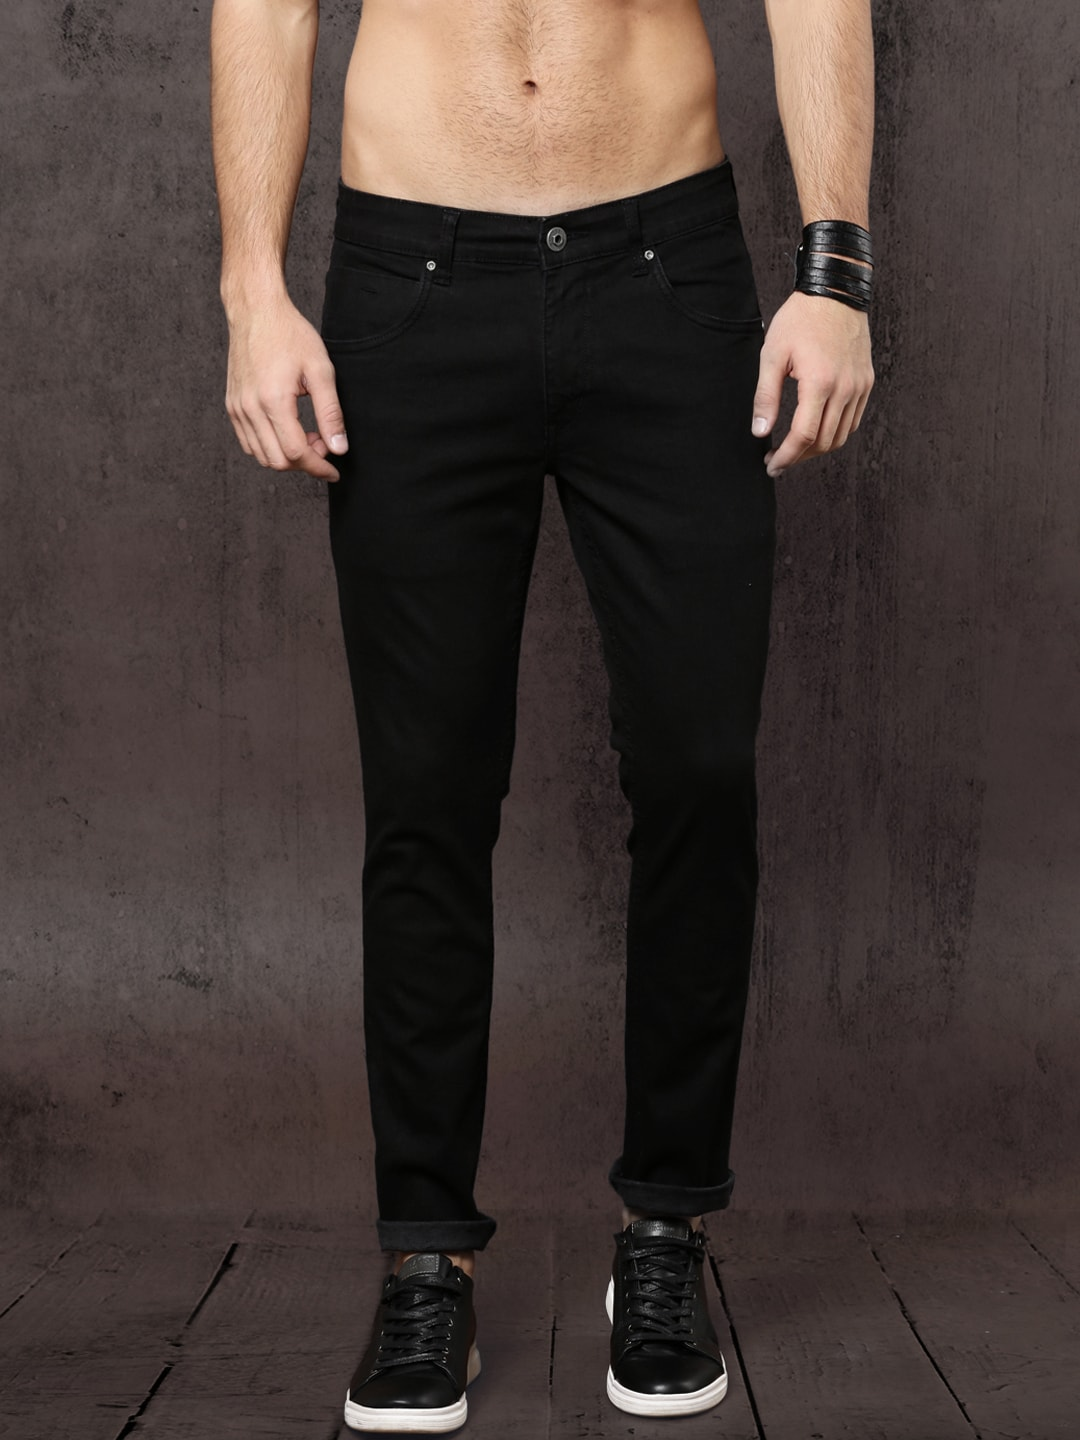 a3398edc75d Men Jeans - Buy Jeans for Men in India at best prices